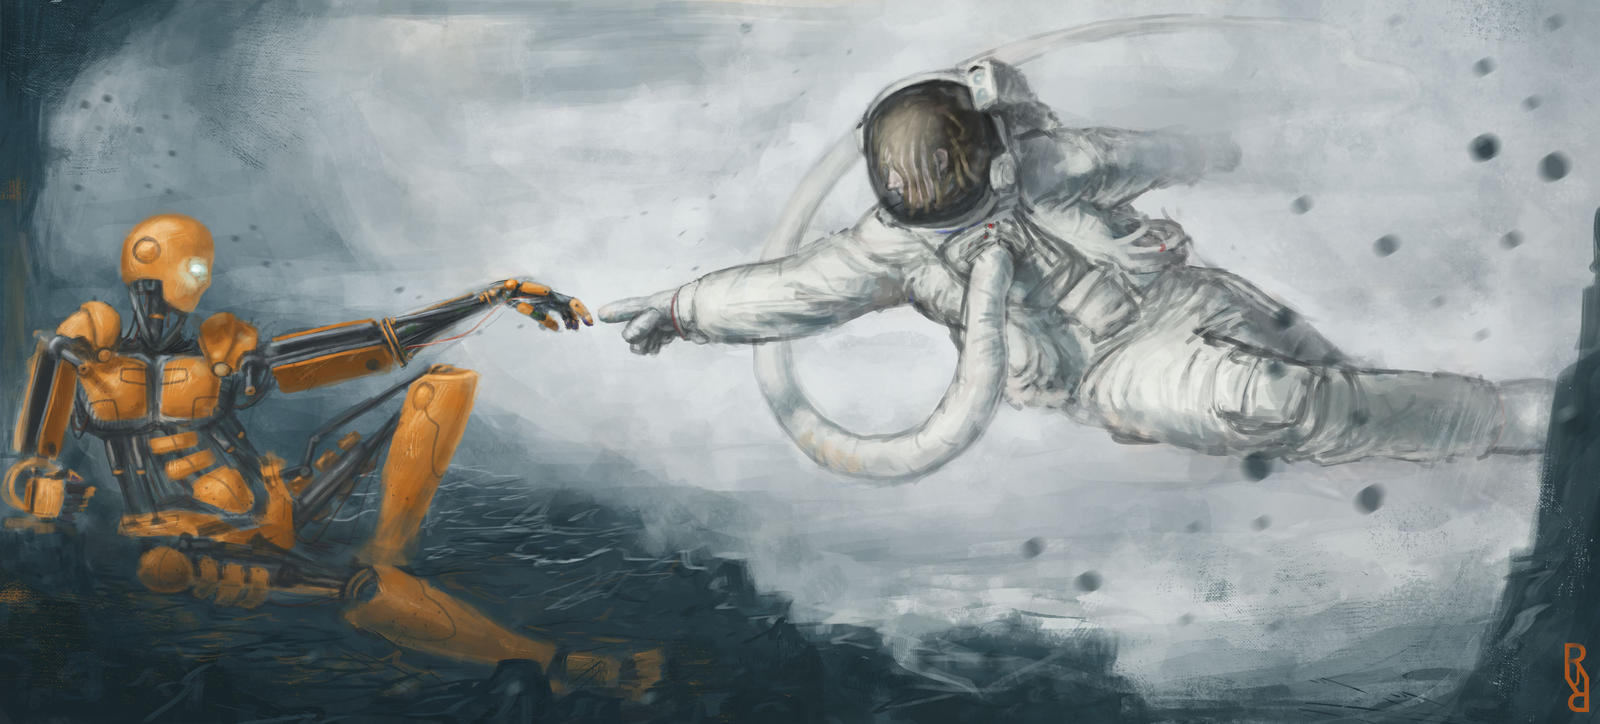 Creation of adam 2 0 by robedirobrob on deviantart for Creation of adam mural